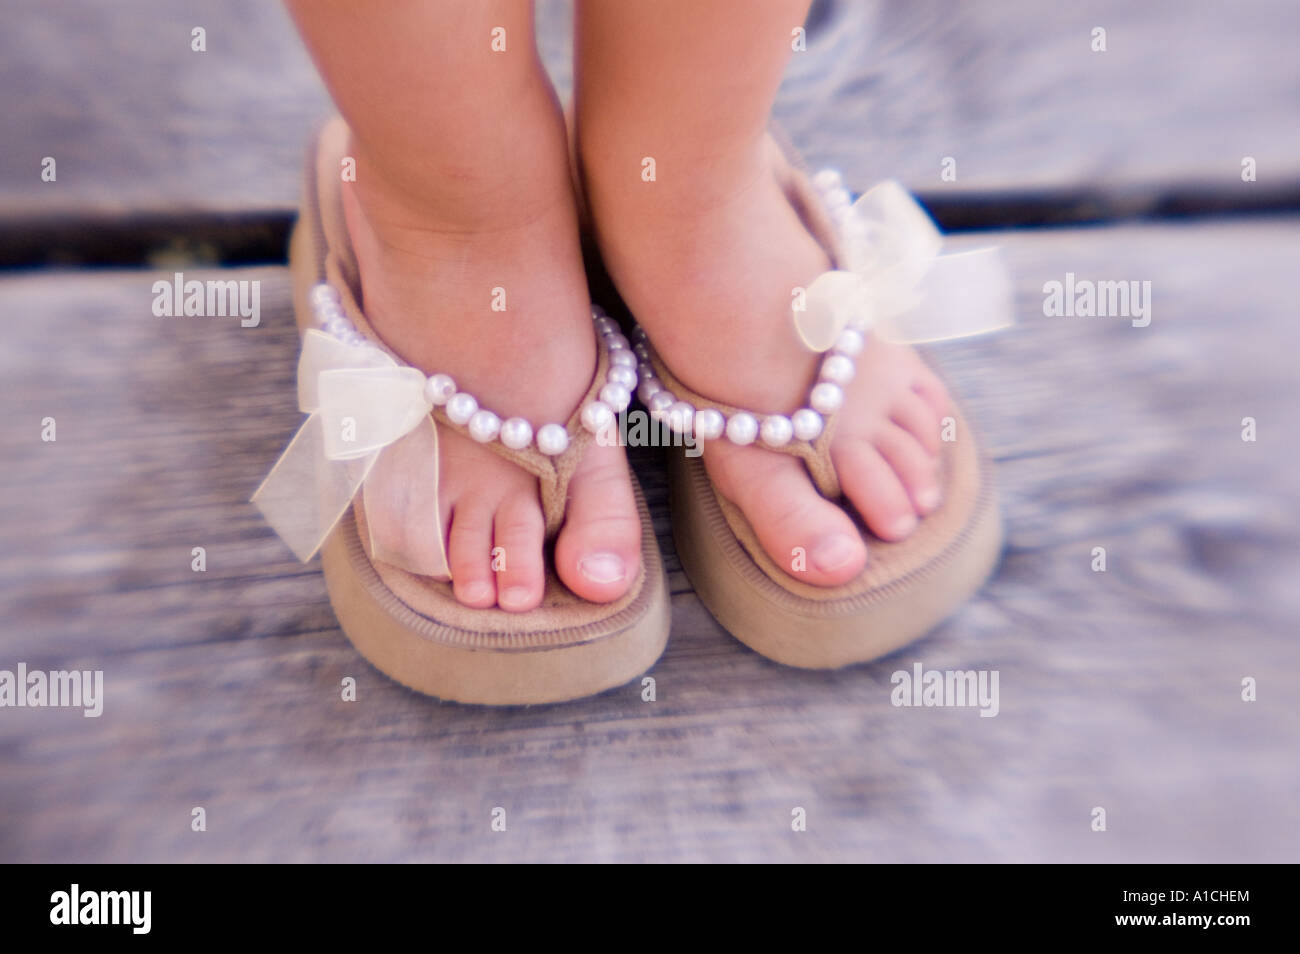 c782eb3106bcf6 Girls Feet In Sandals Stock Photos   Girls Feet In Sandals Stock ...